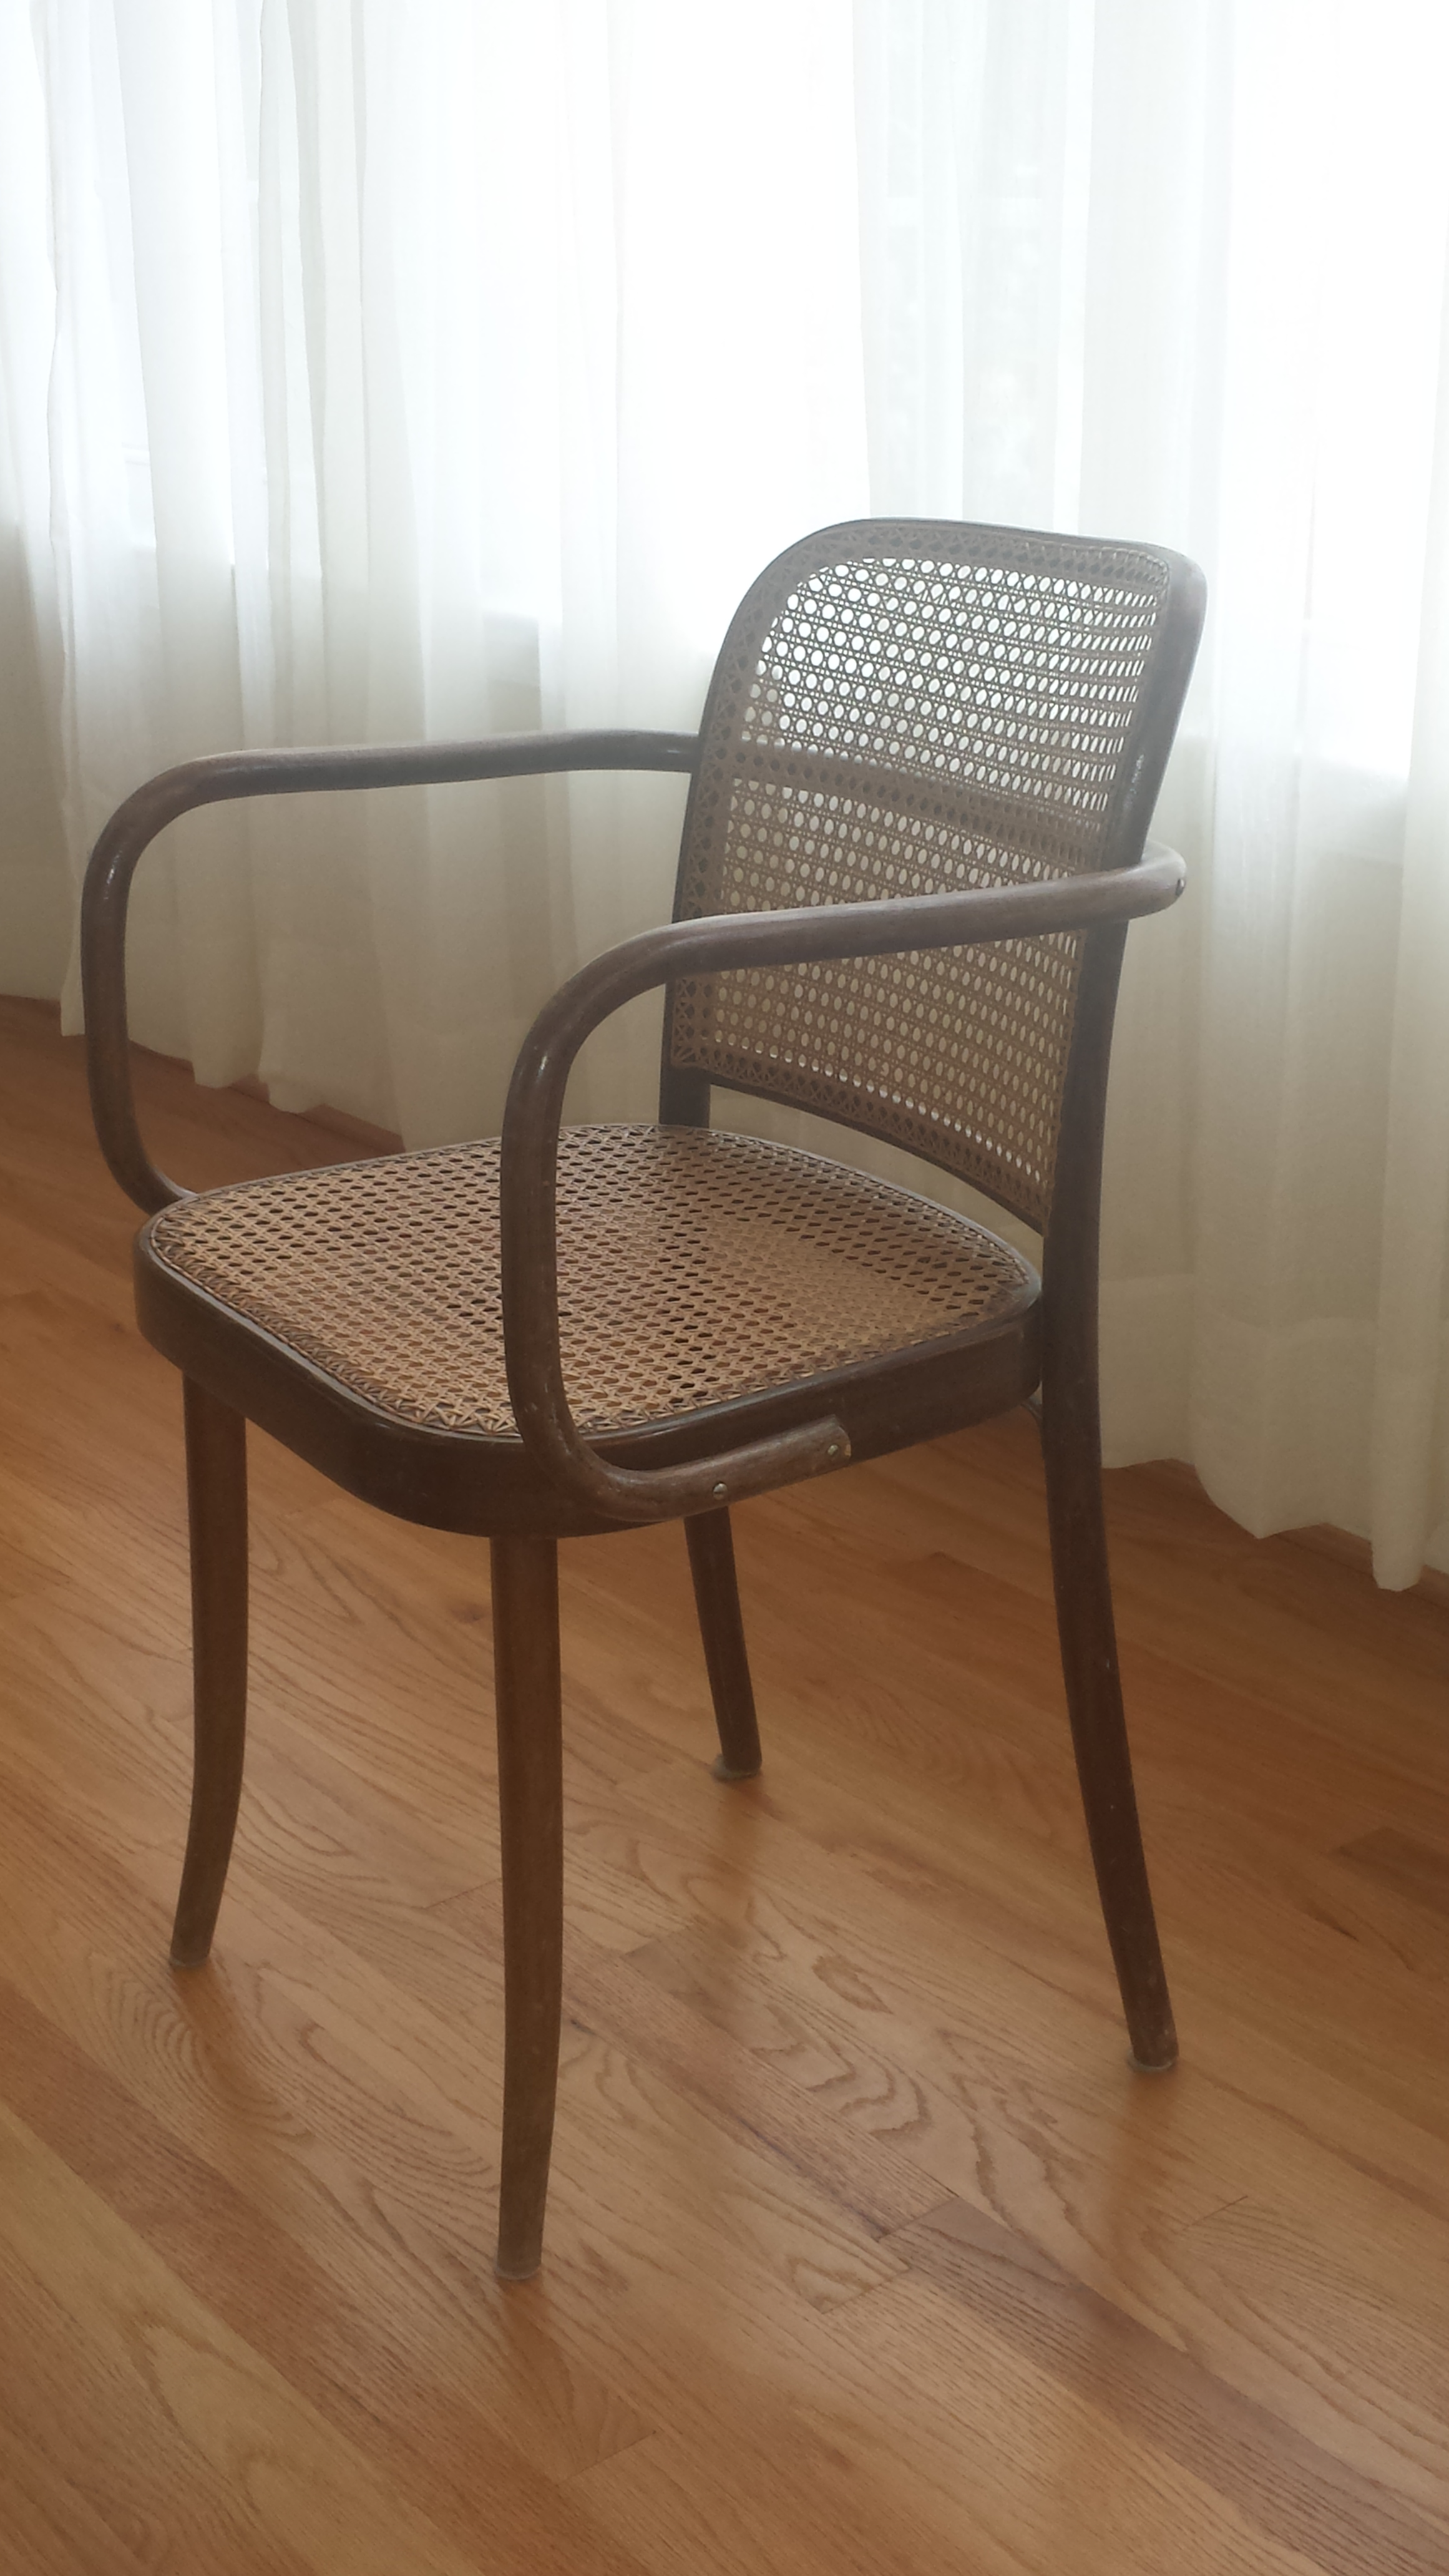 Nice Vintage Stendig Thonet Bentwood Cane Chairs   Set Of 4   Image 4 Of 11